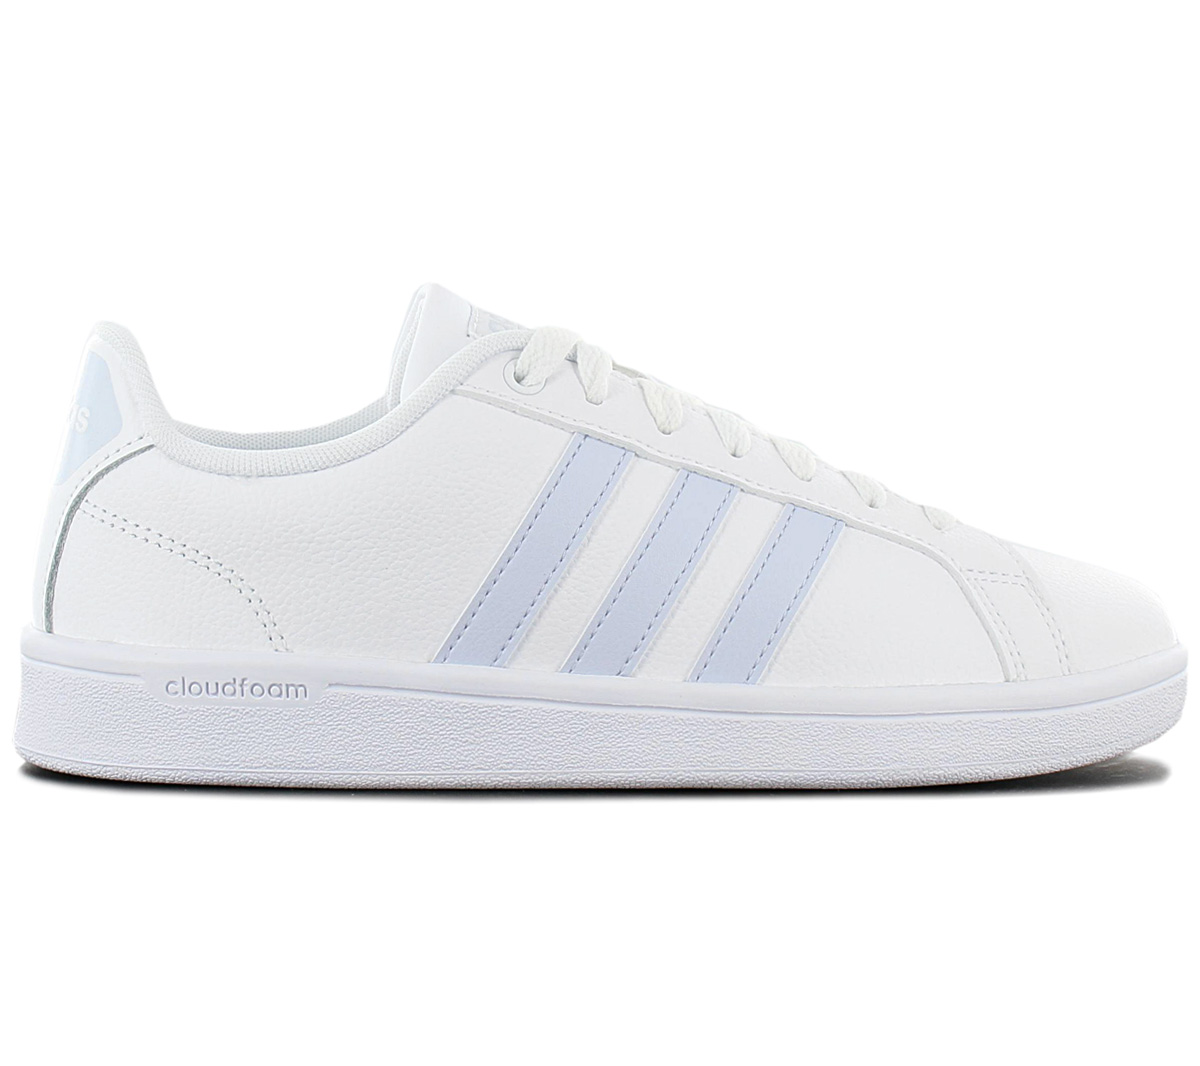 Details about NEW adidas CloudFoam Advantage CF B28095 Women`s Shoes  Trainers Sneakers SALE